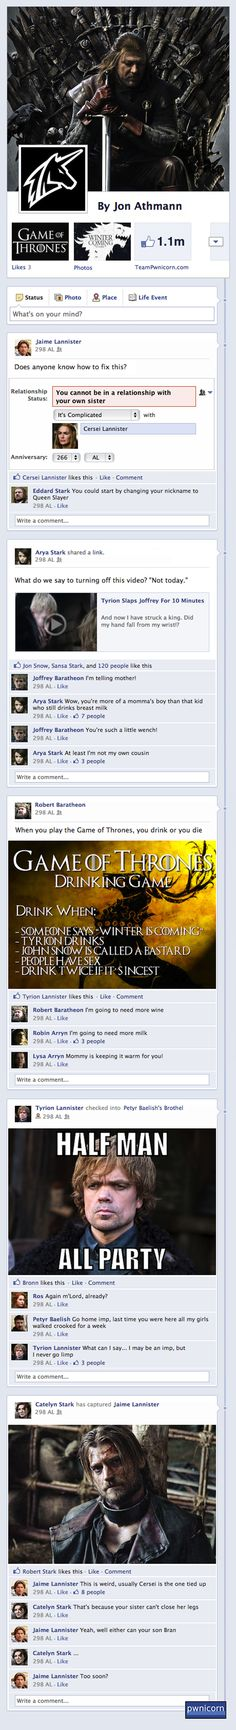 If Game Of Thrones Characters Had Facebook